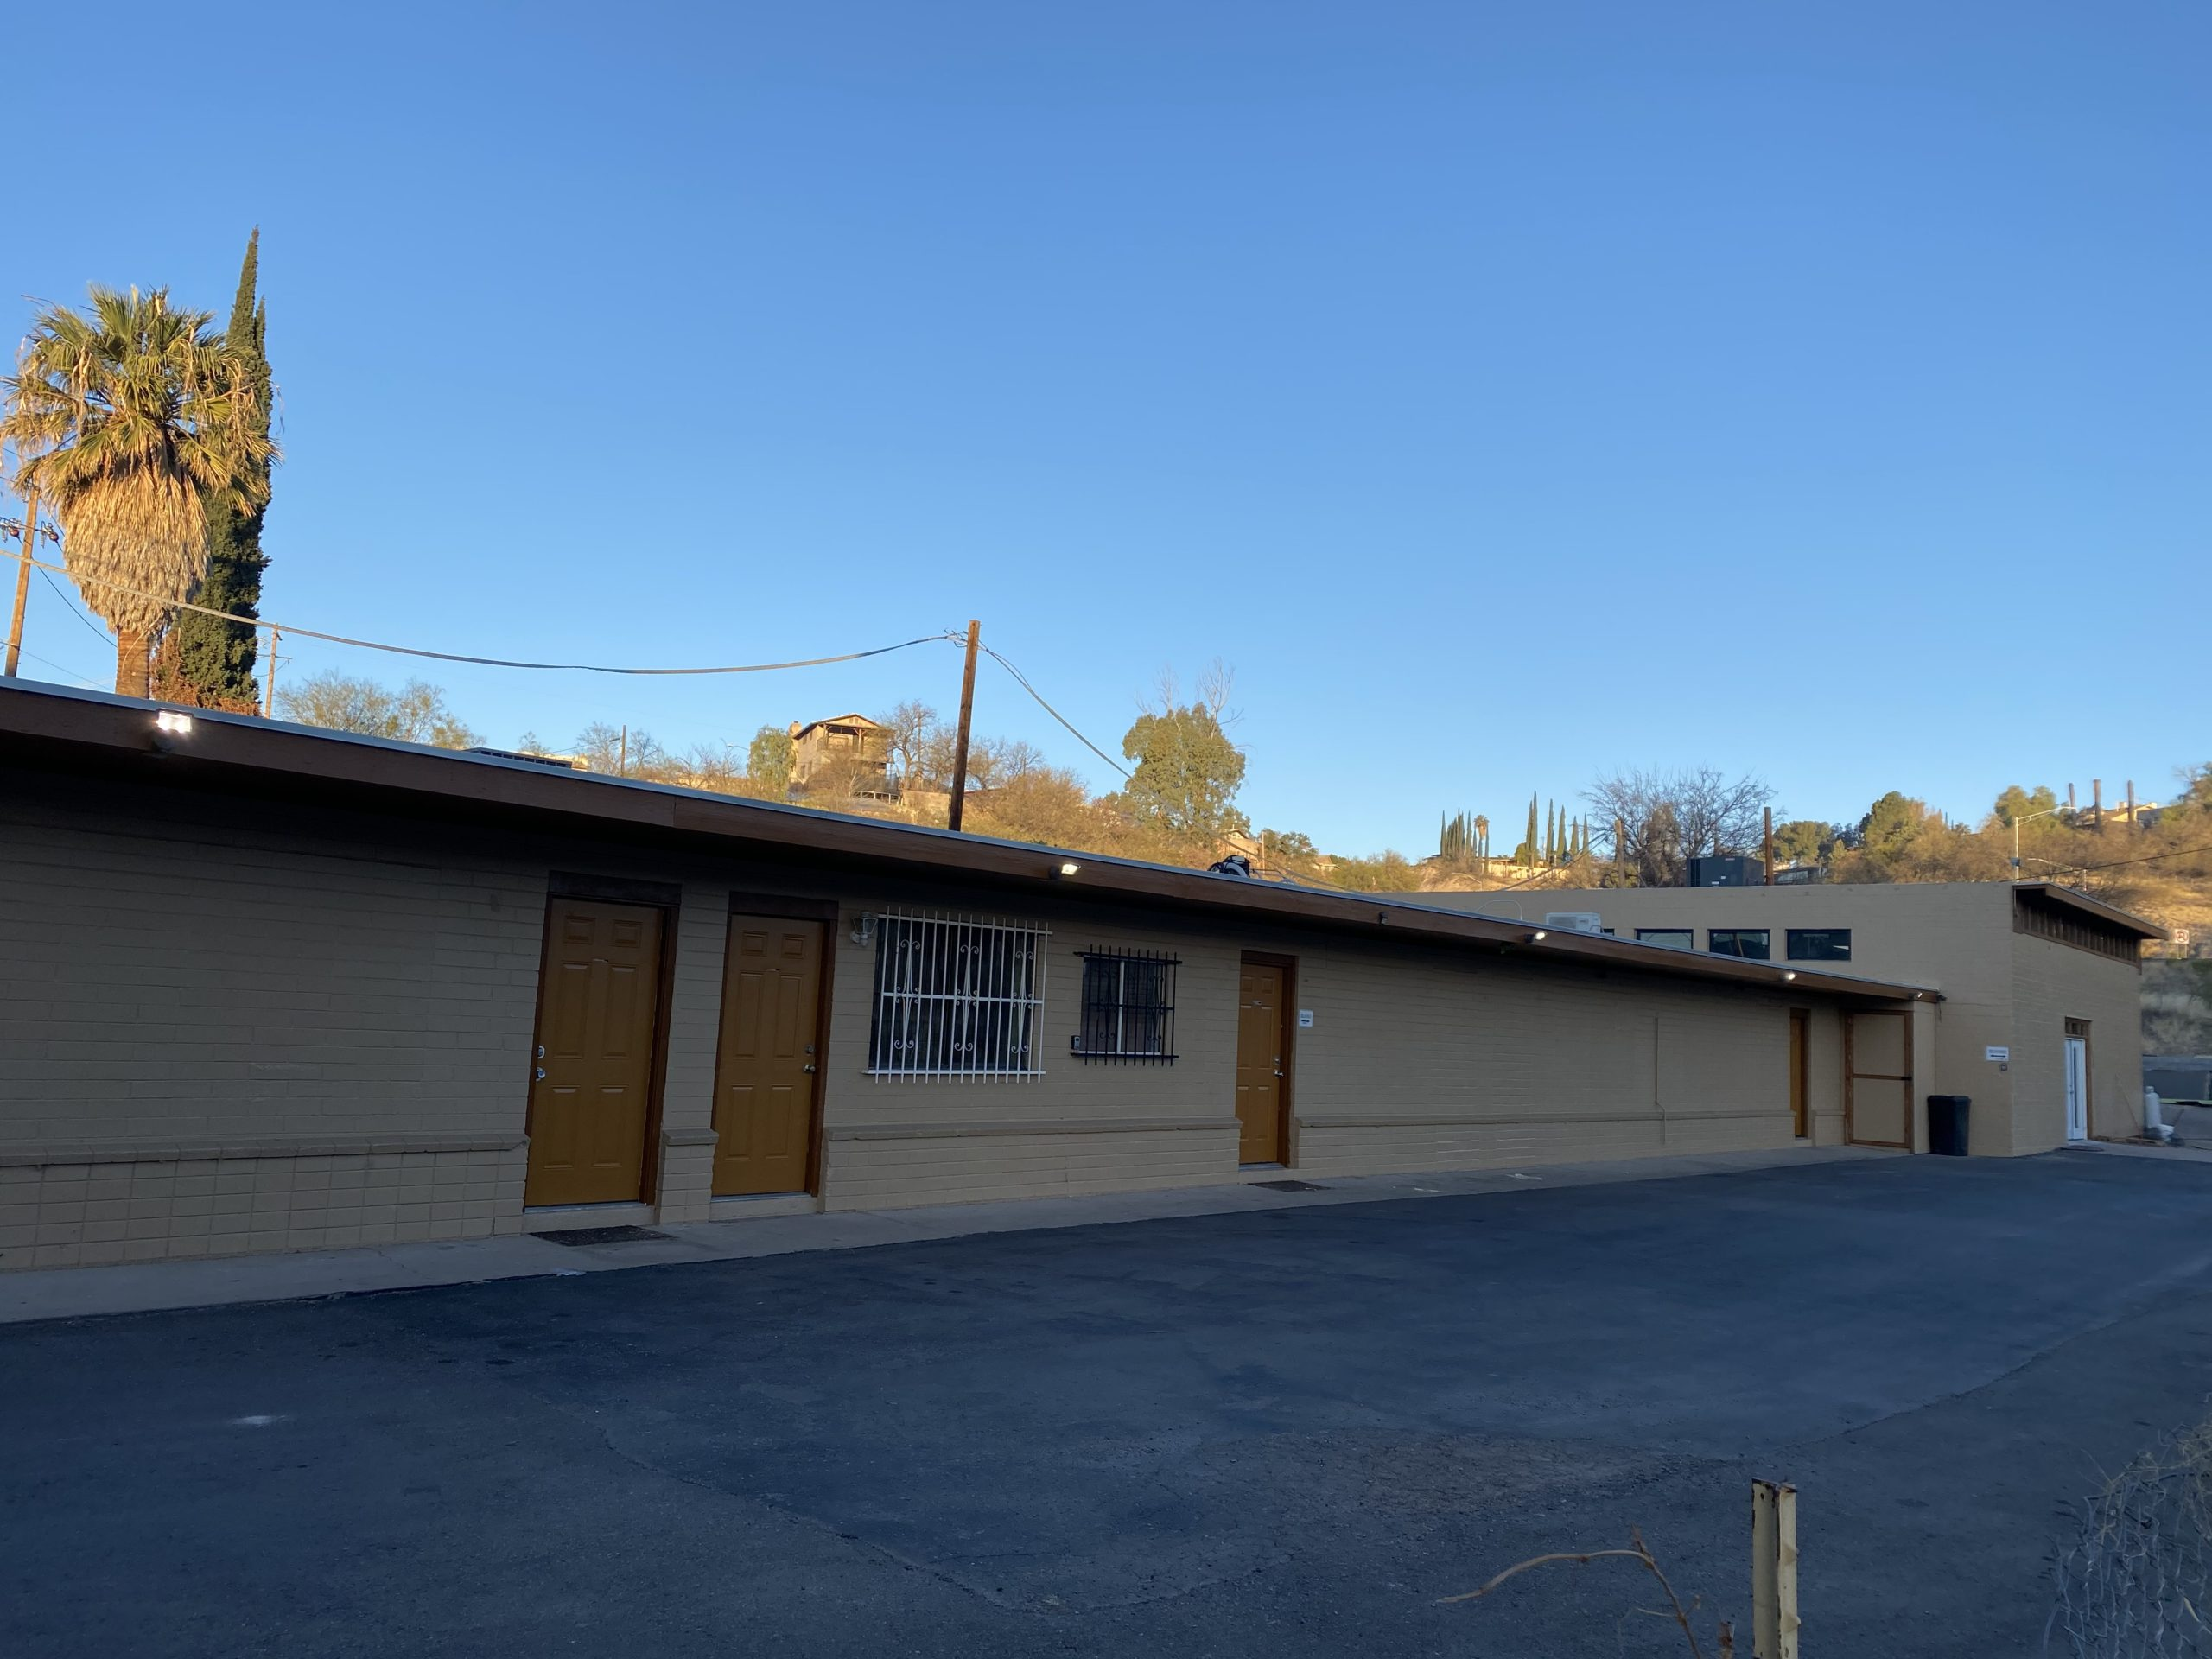 Buyer can continue the lease at $5000/mo, purchase the building from the company owner, or re-locate the company.